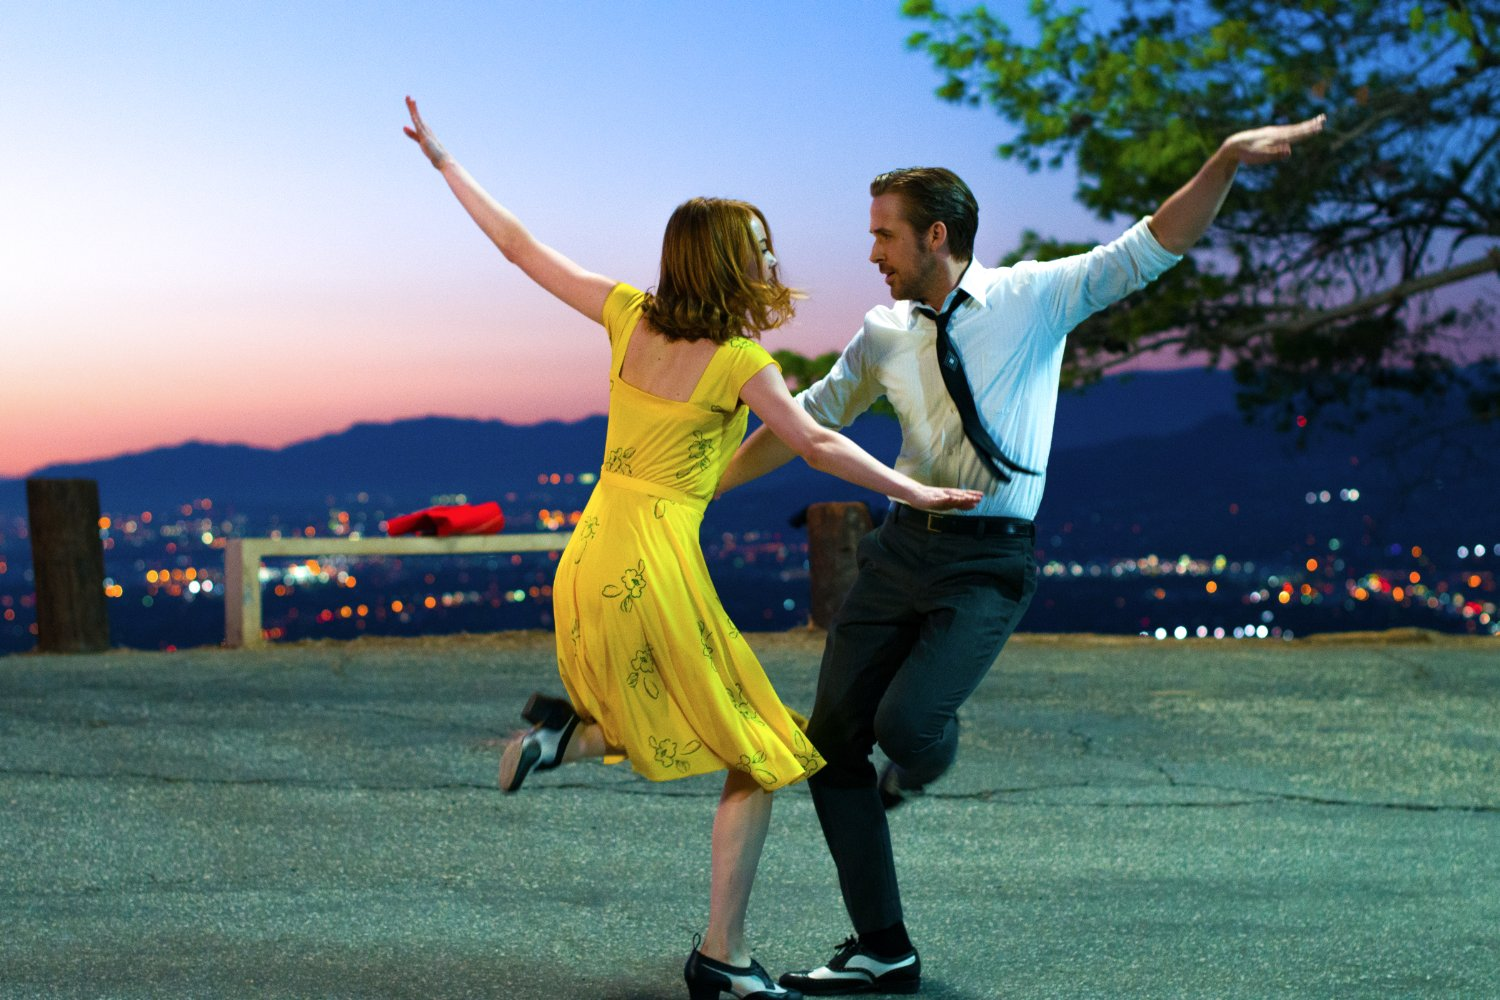 La La Land wins People's Choice Award at TIFF